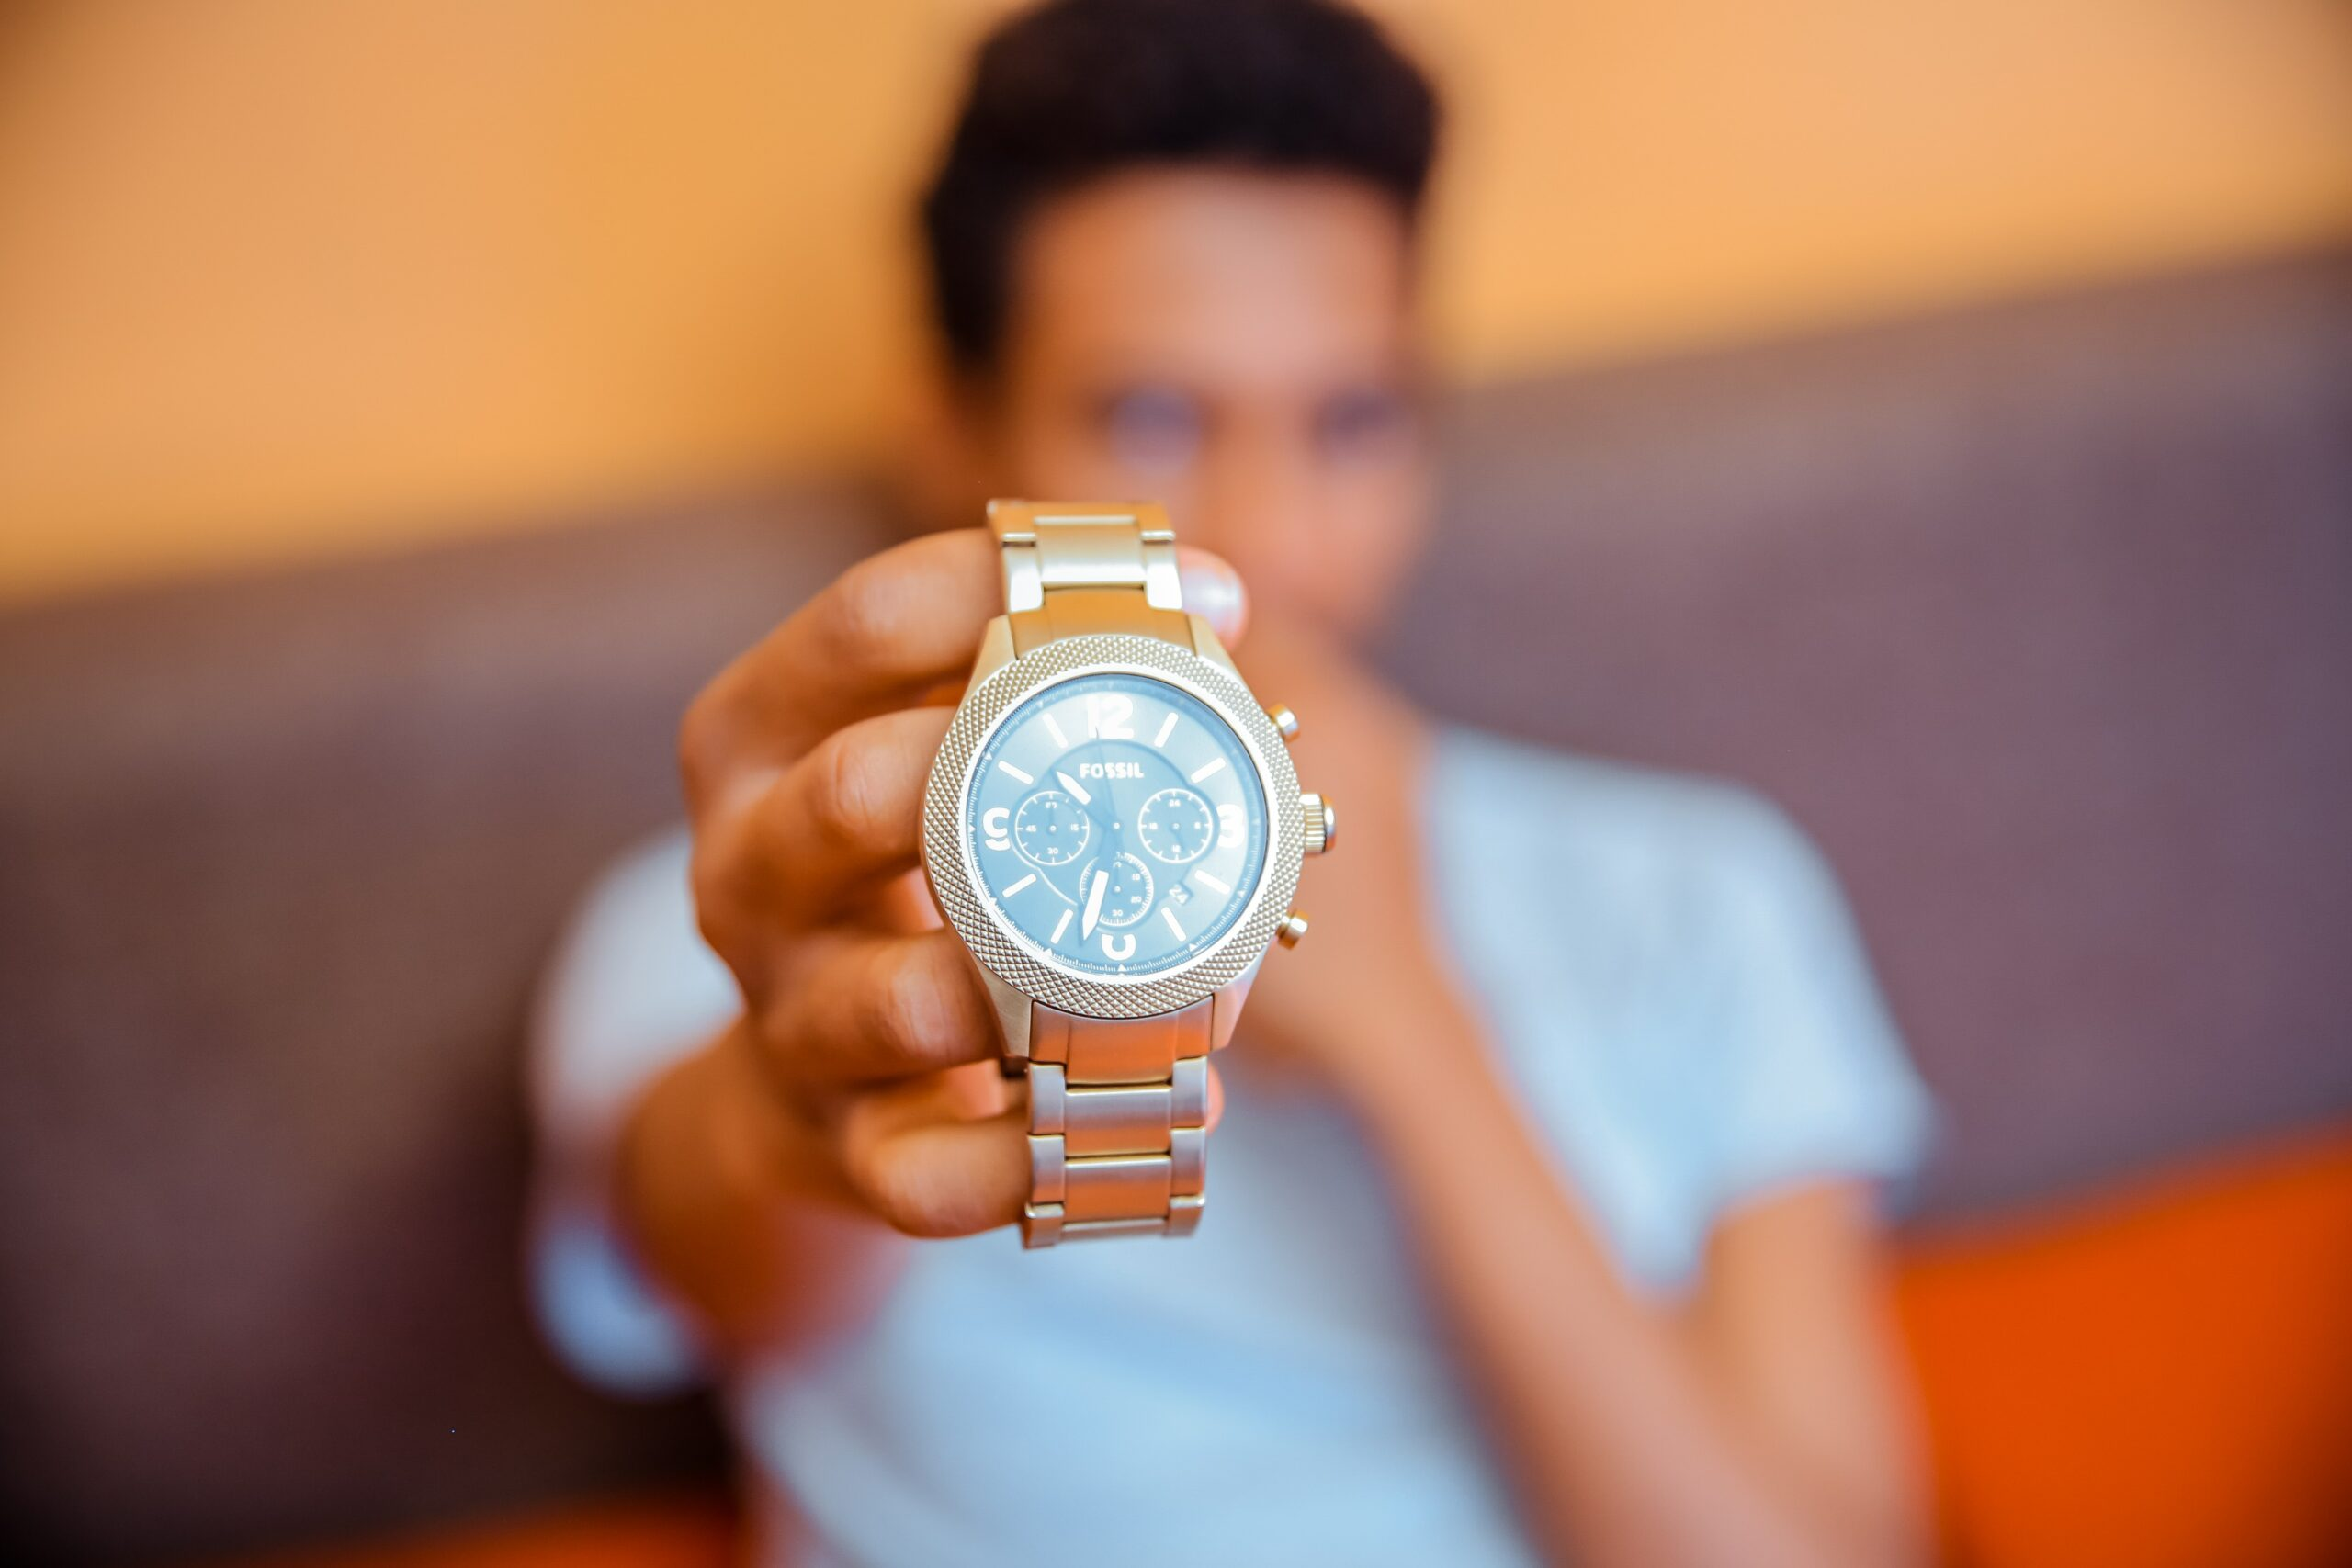 Where to wear a watch